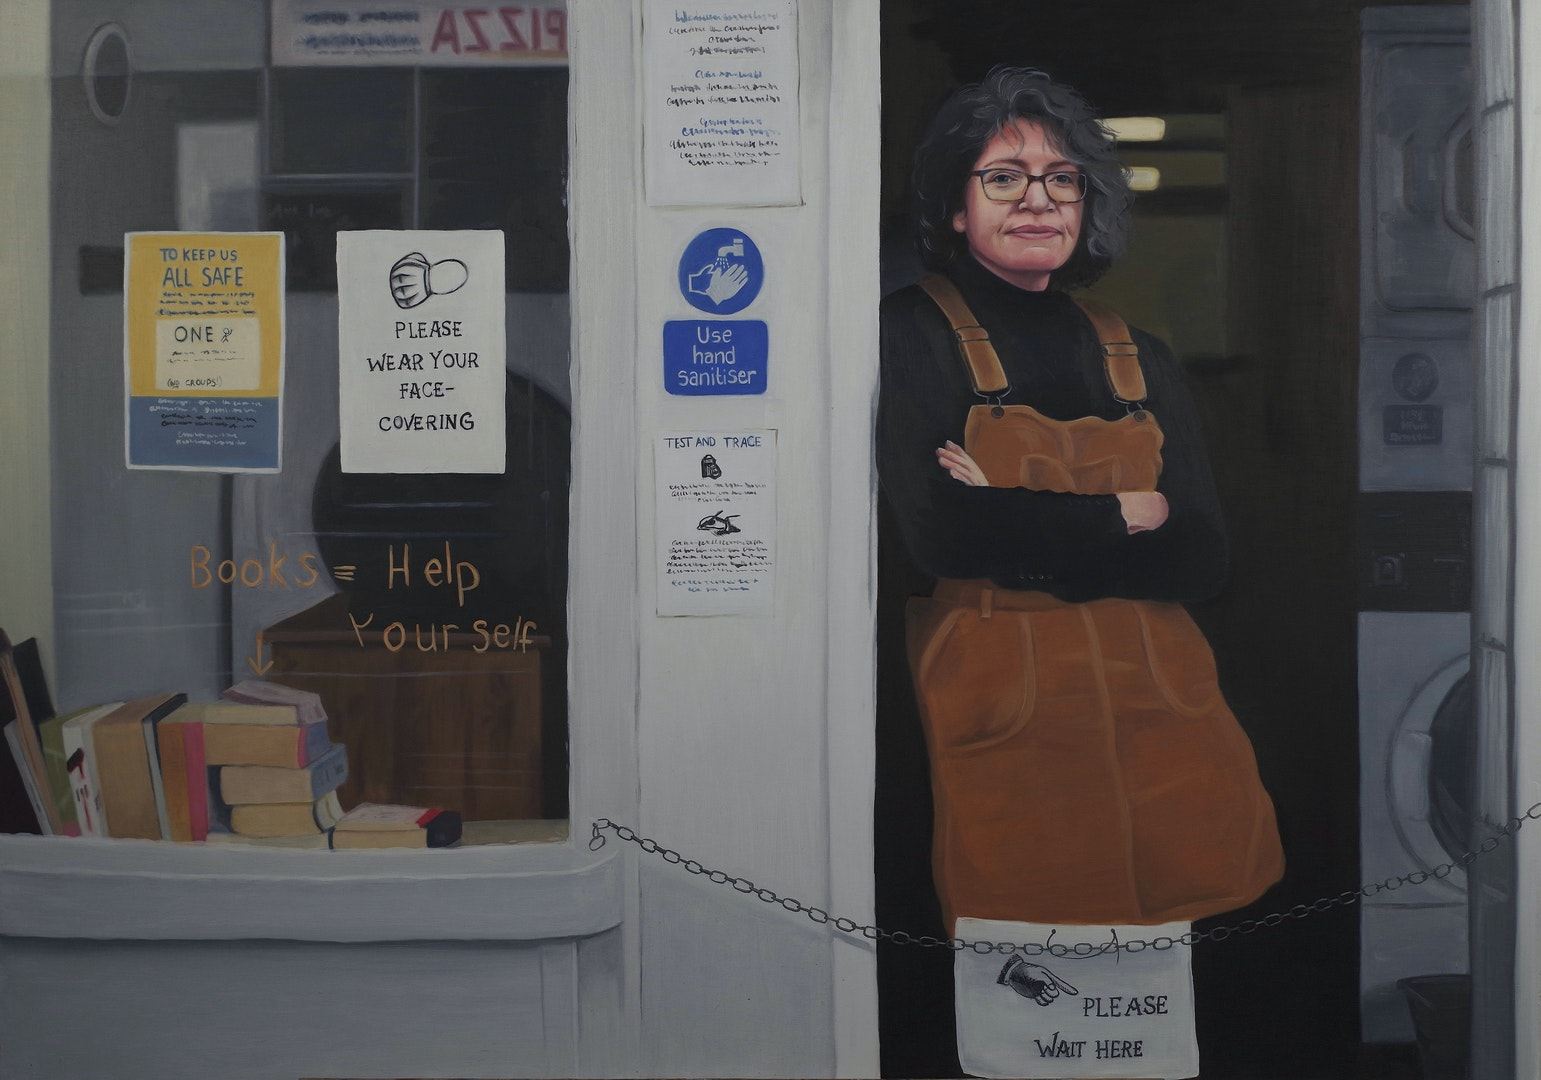 'Alice at the Laundrette', Amelia Webster, Oil on Board, 60 x 84 cm